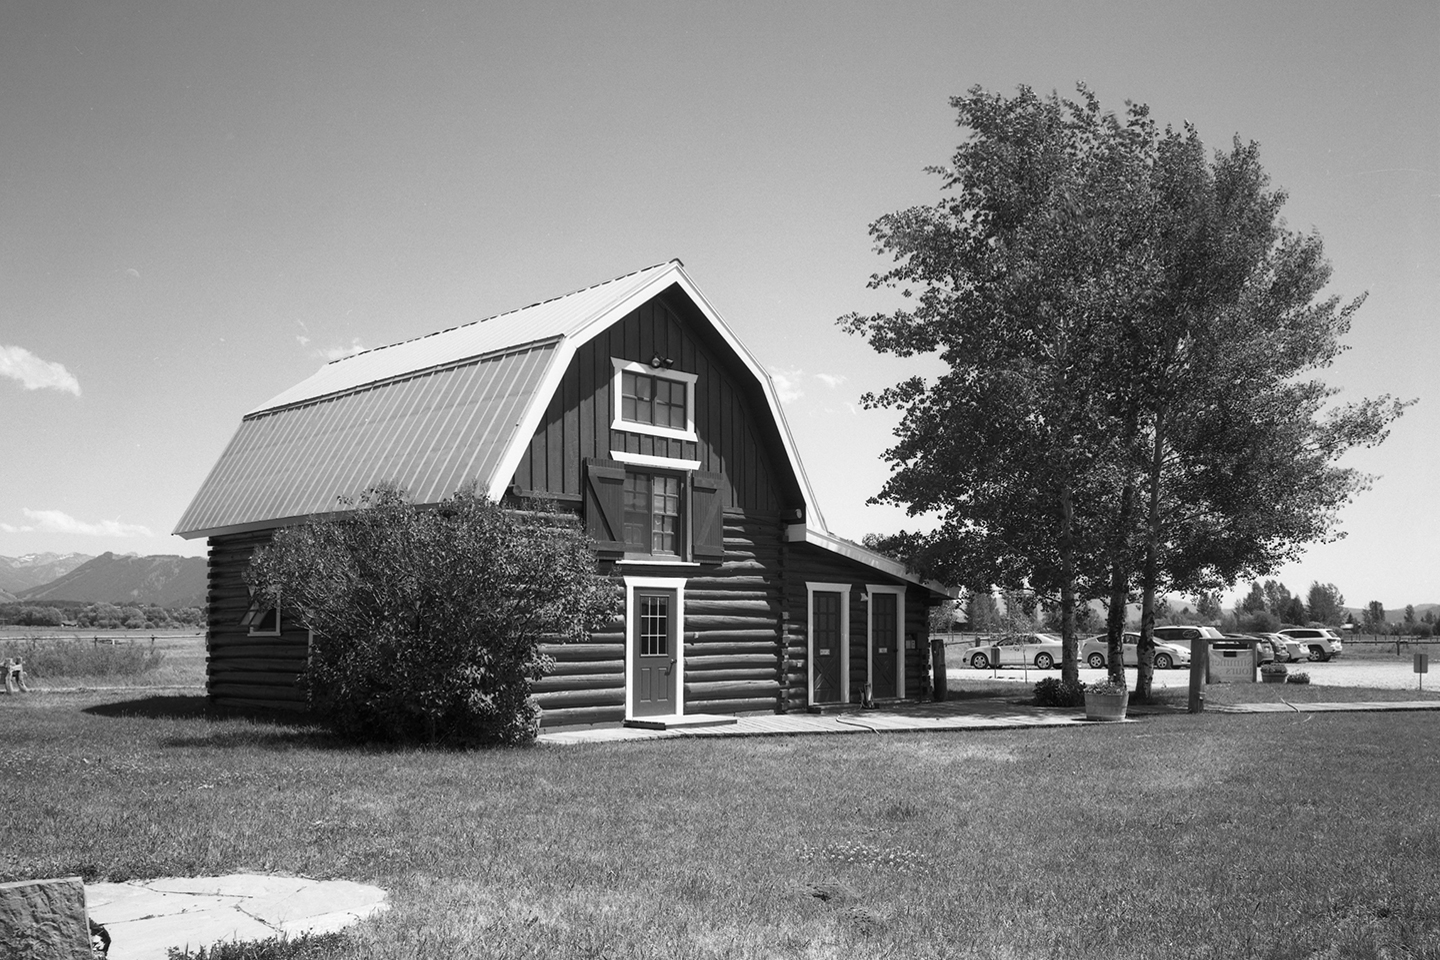 The East barn, built around 1930